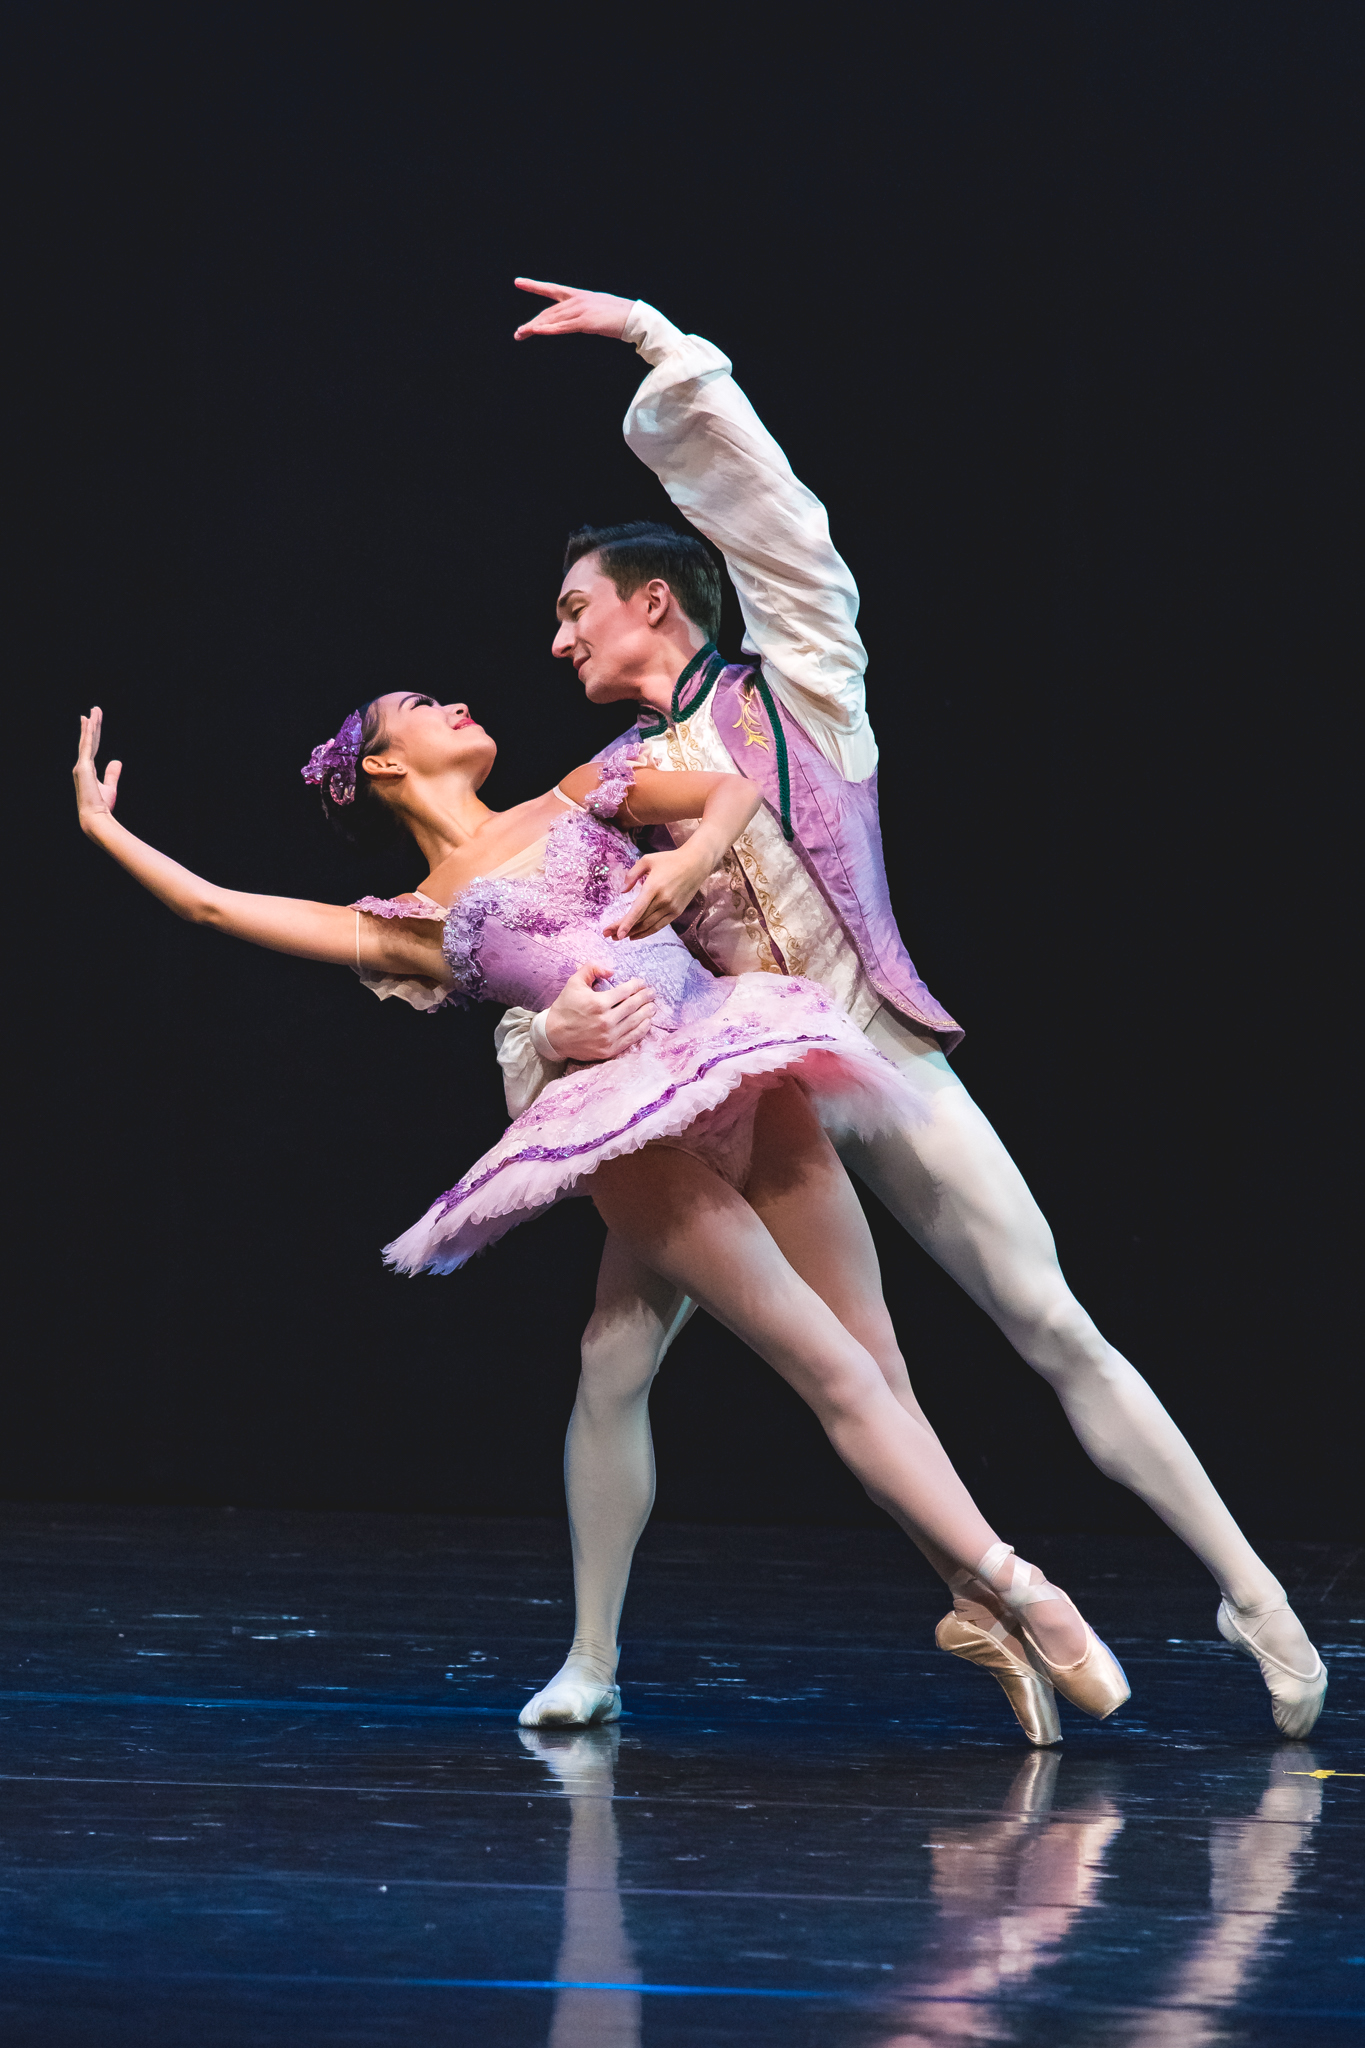 Dance Photography, Capturing dancers at their very best ...